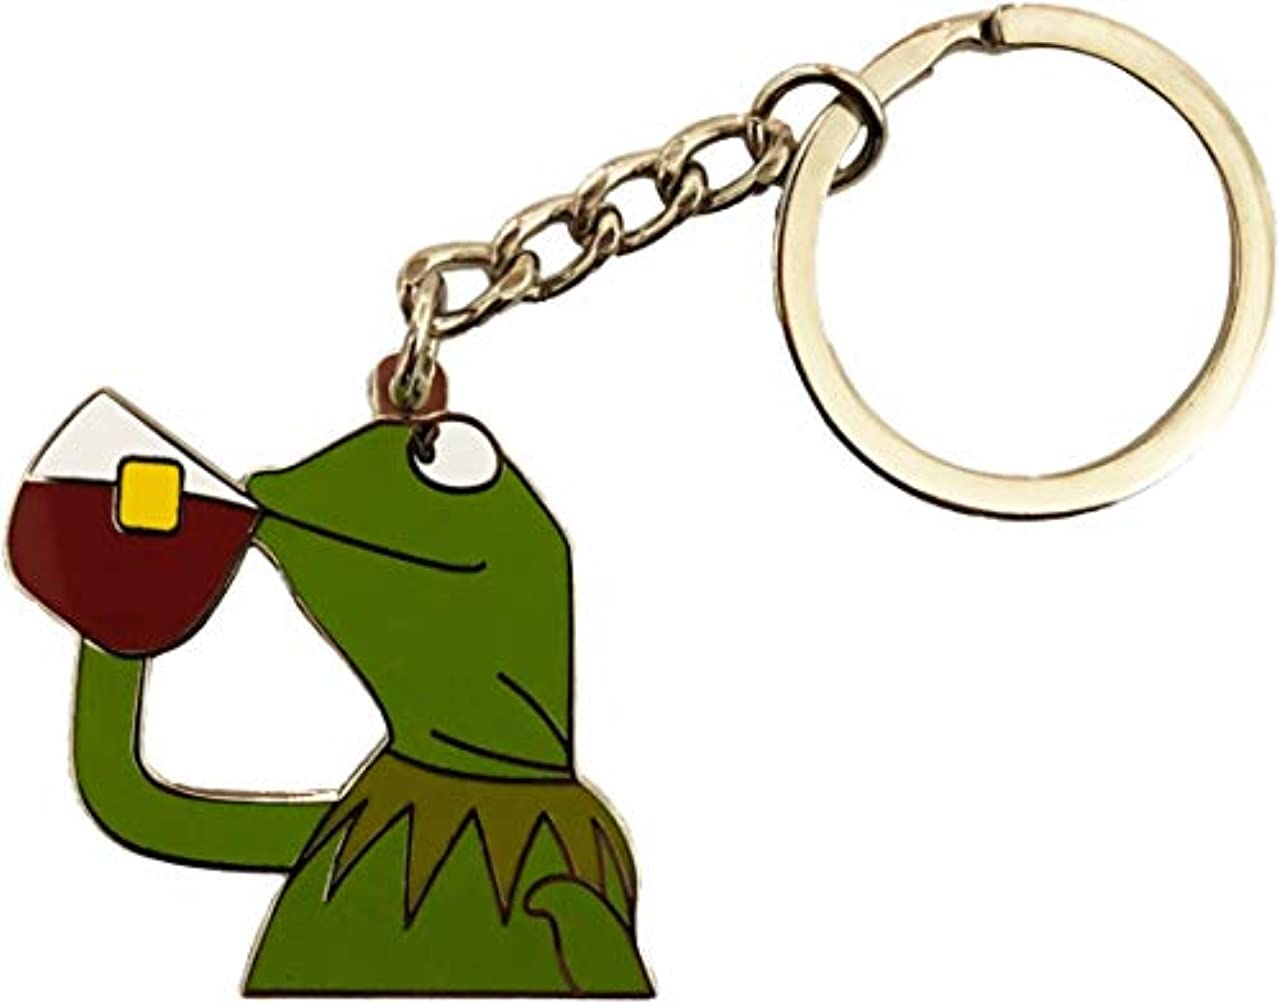 Balanced Co. Kermit None of My Business Keychain Kermit Keychain Kermit Sipping Tea Key Chain